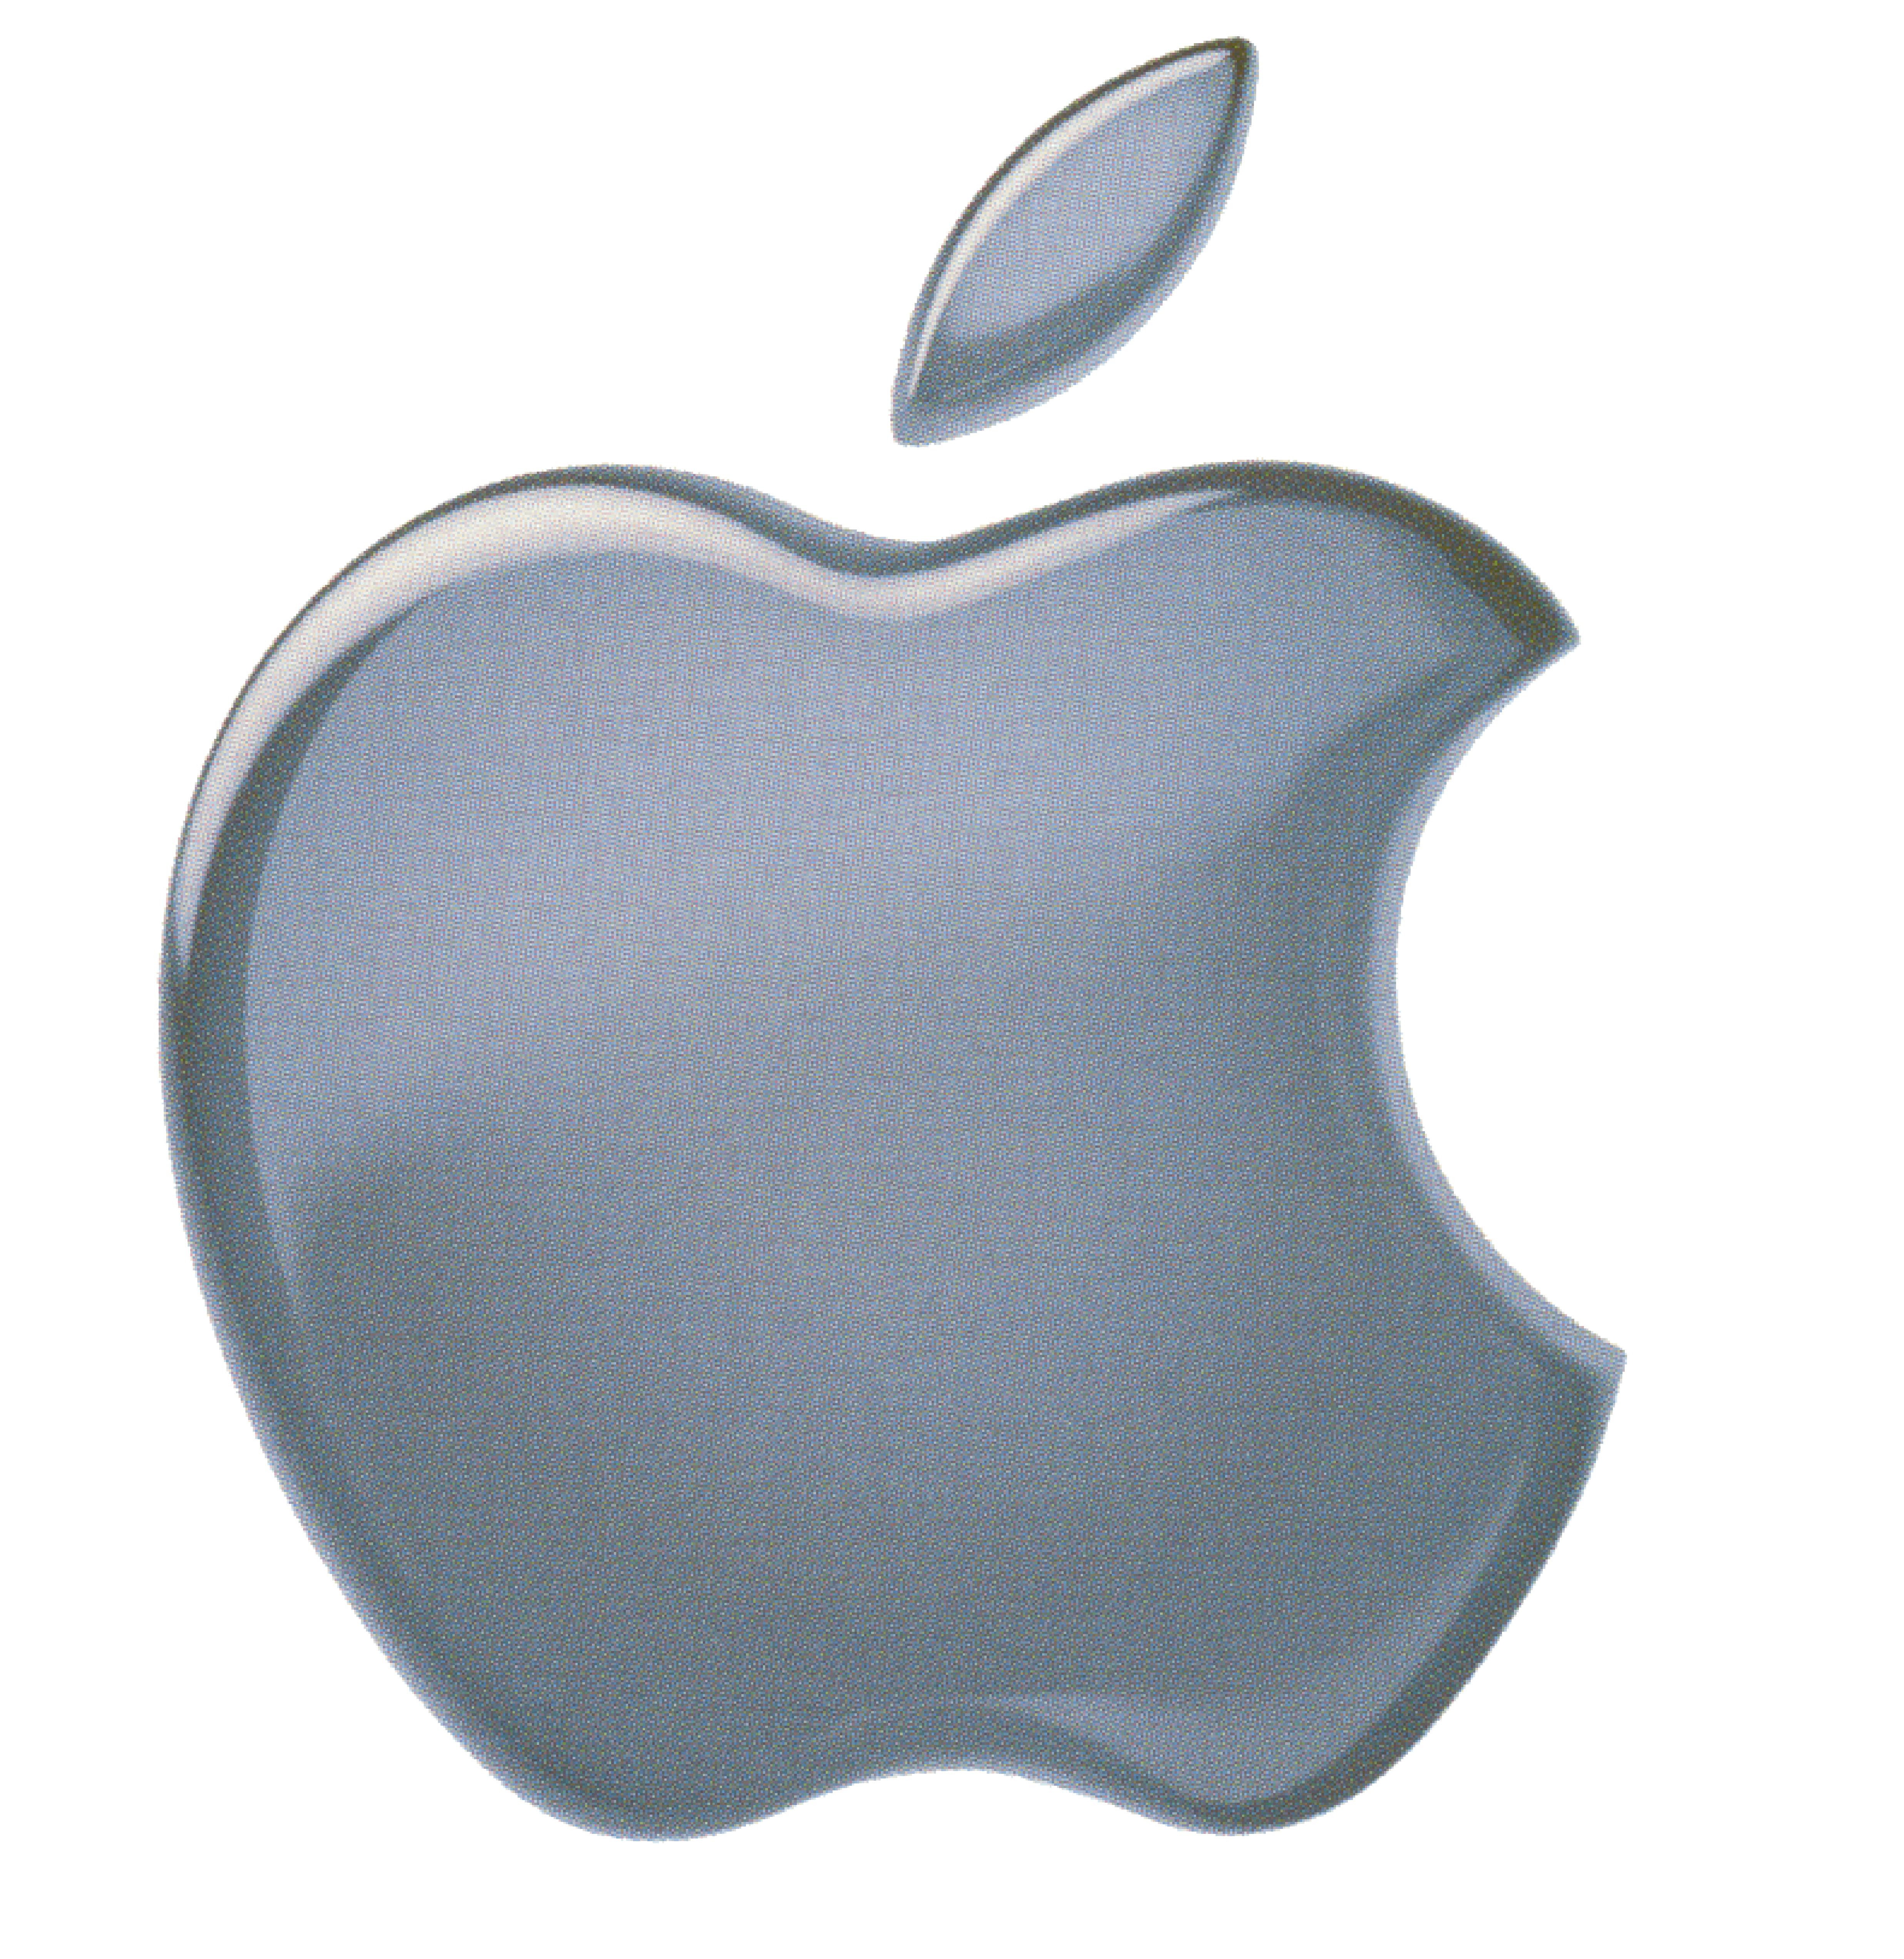 Icon Apple Logo Image Free